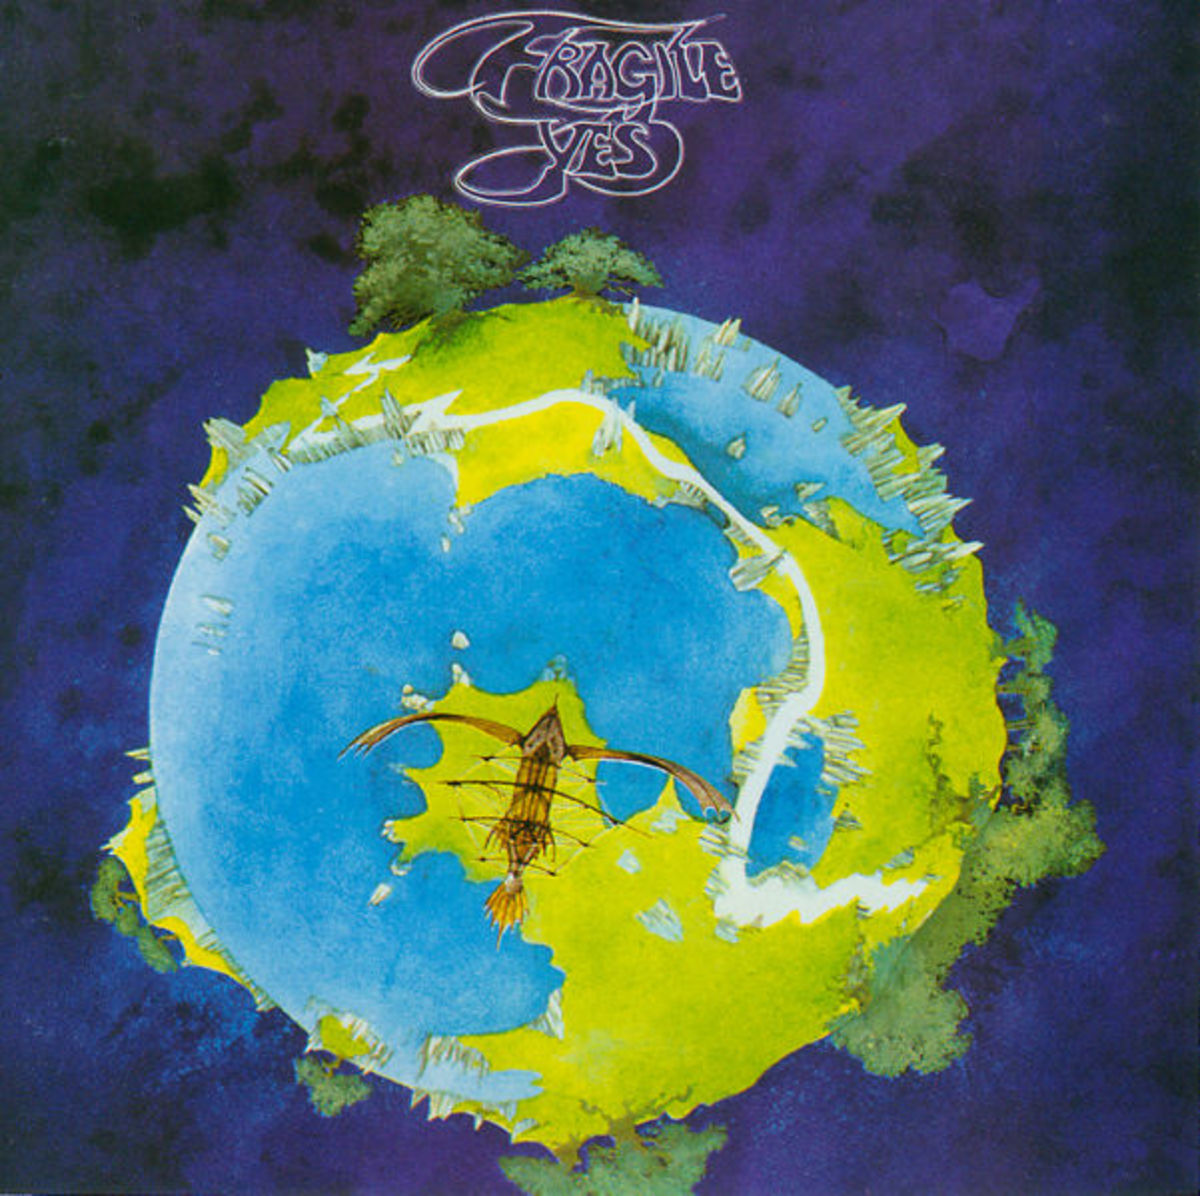 "Yes ""Fragile"" Atlantic Records SD 7211 12"" LP Vinyl Record, US Pressing (1971) Gatefold Album Cover Art & Design by Roger Dean"